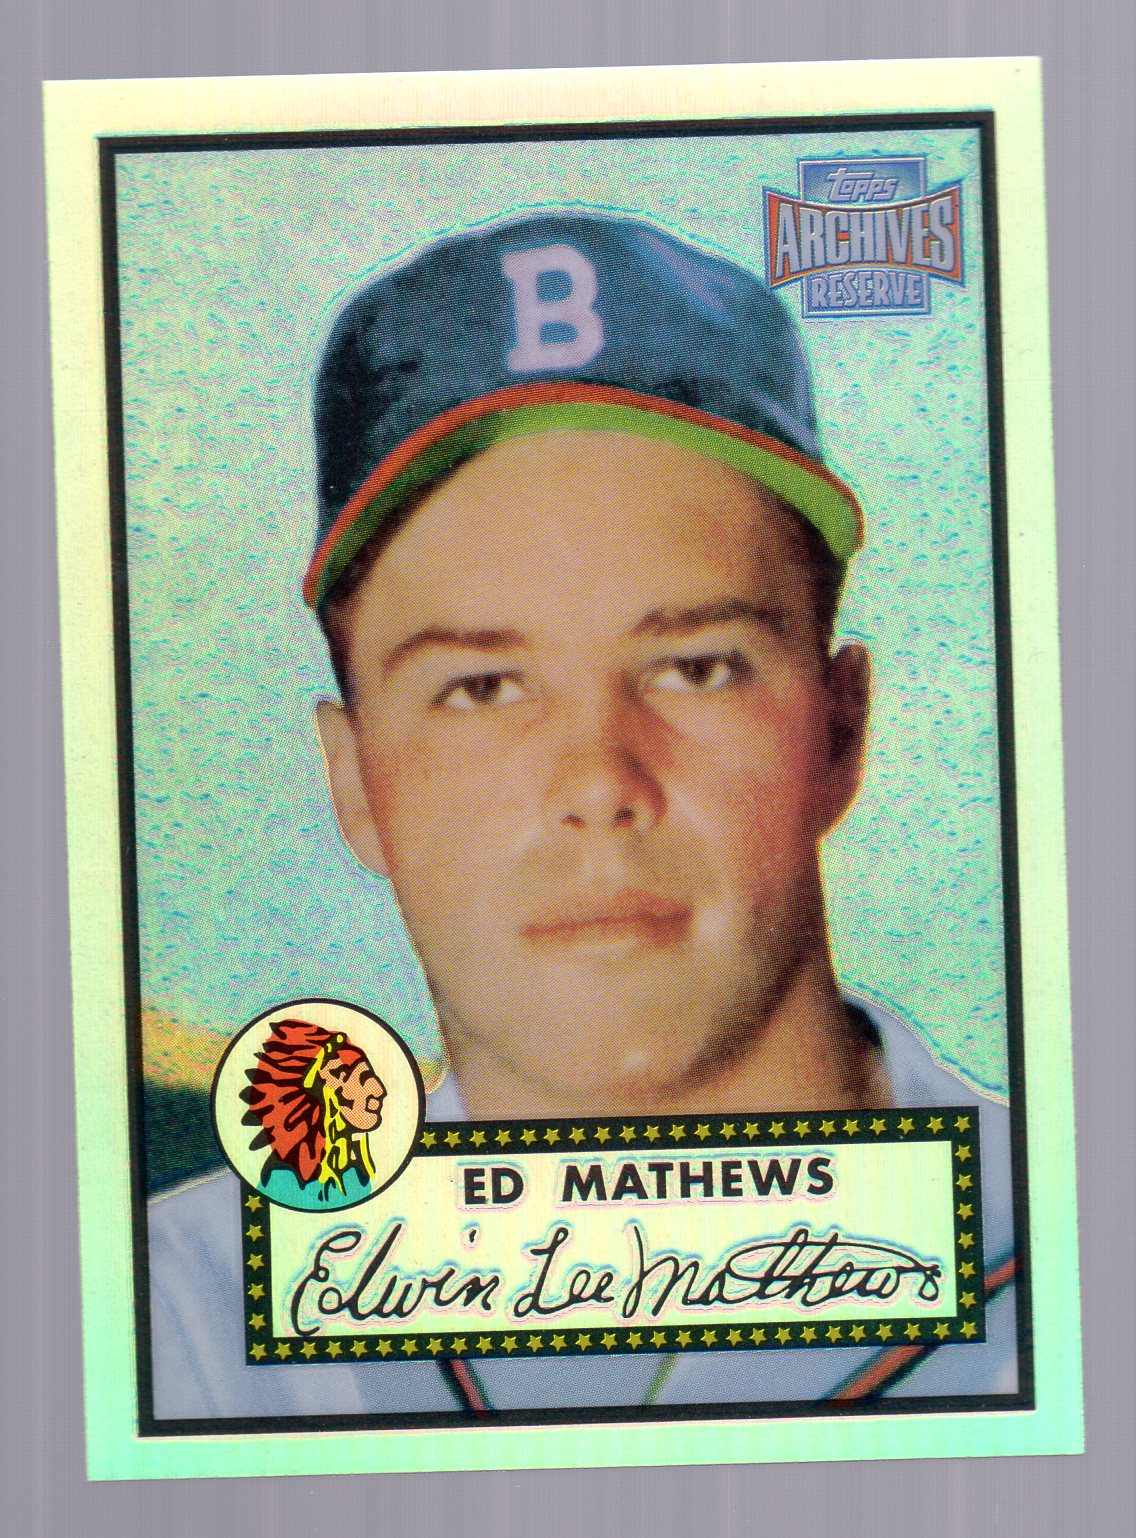 2001 Topps Archives Reserve #48 Eddie Mathews 52